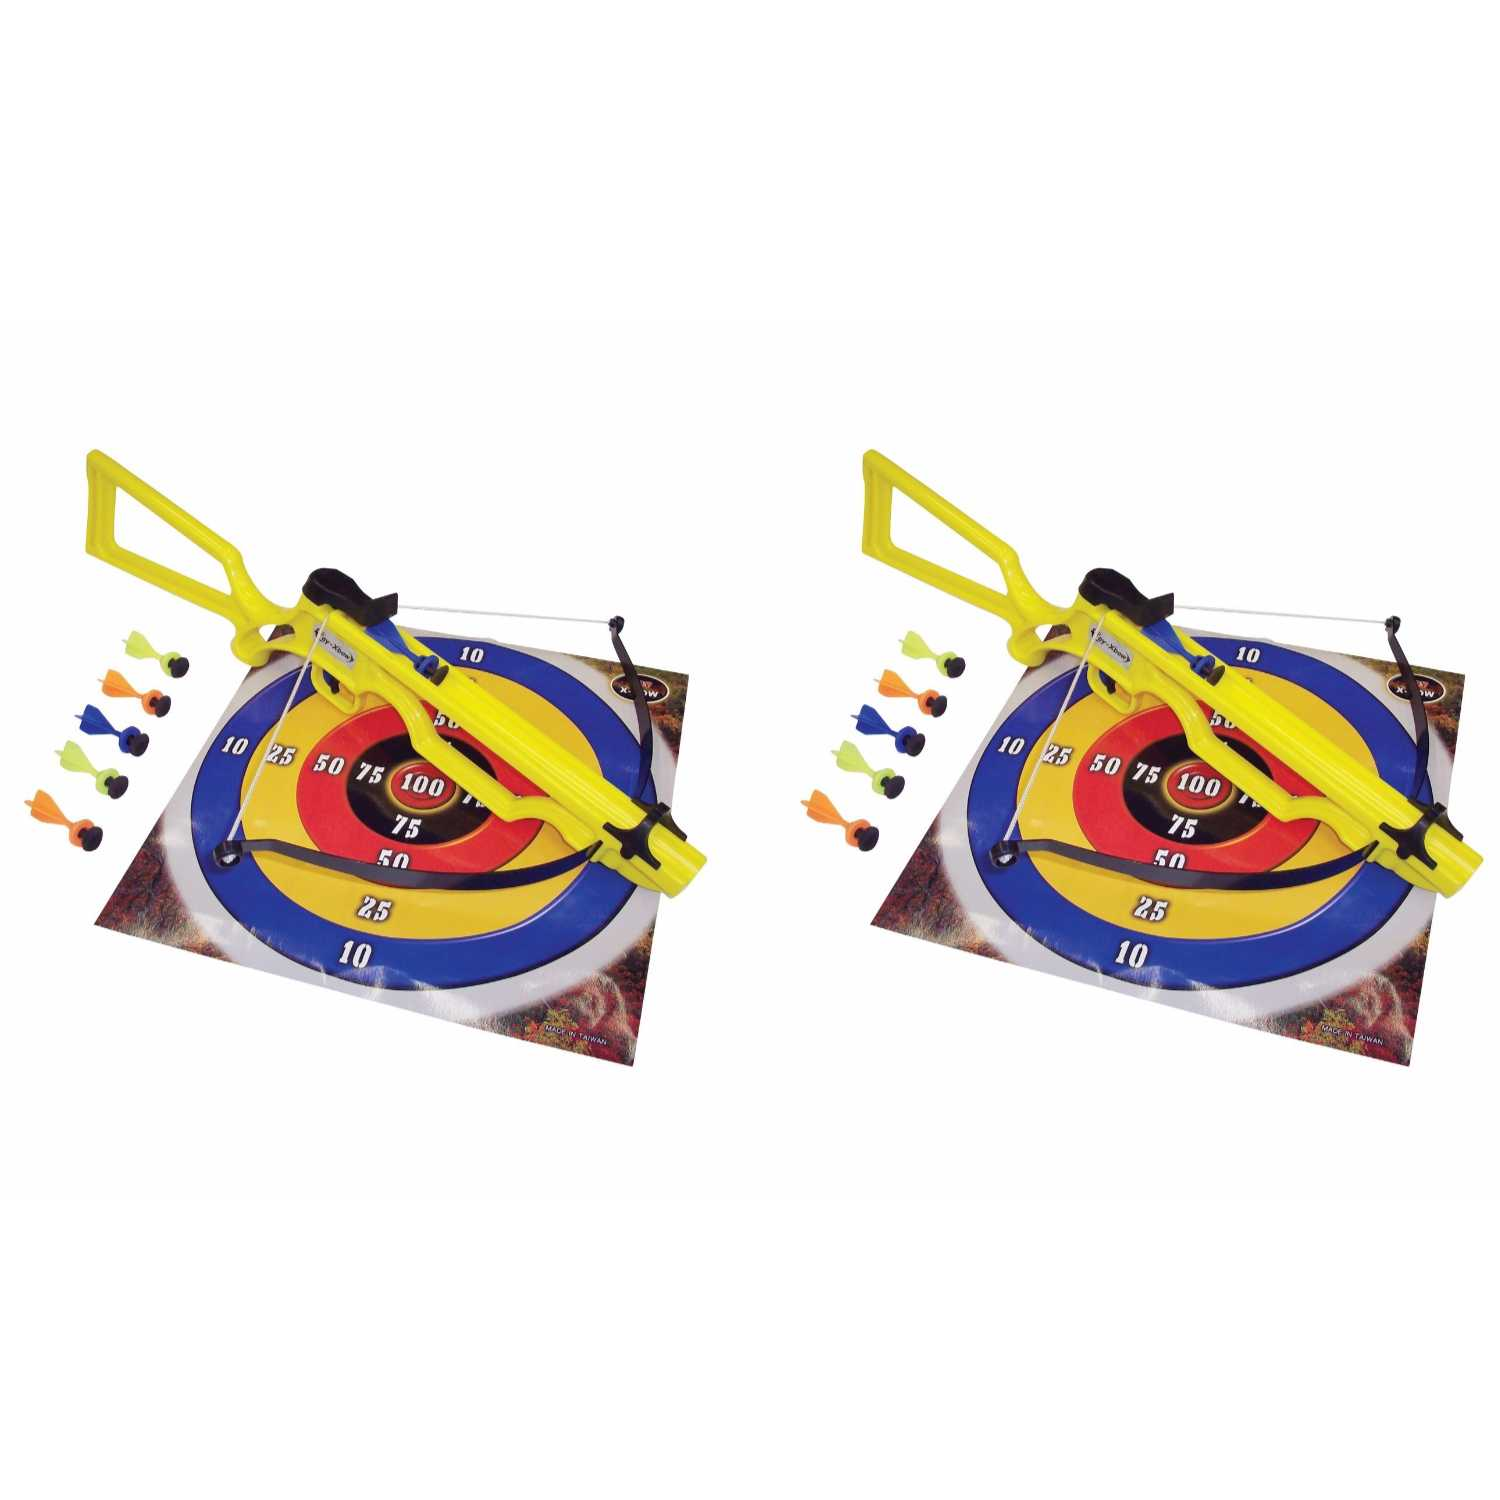 SA Sports Sniper Toy Crossbow #568 2-Pack with 12 Safety Darts and Targets